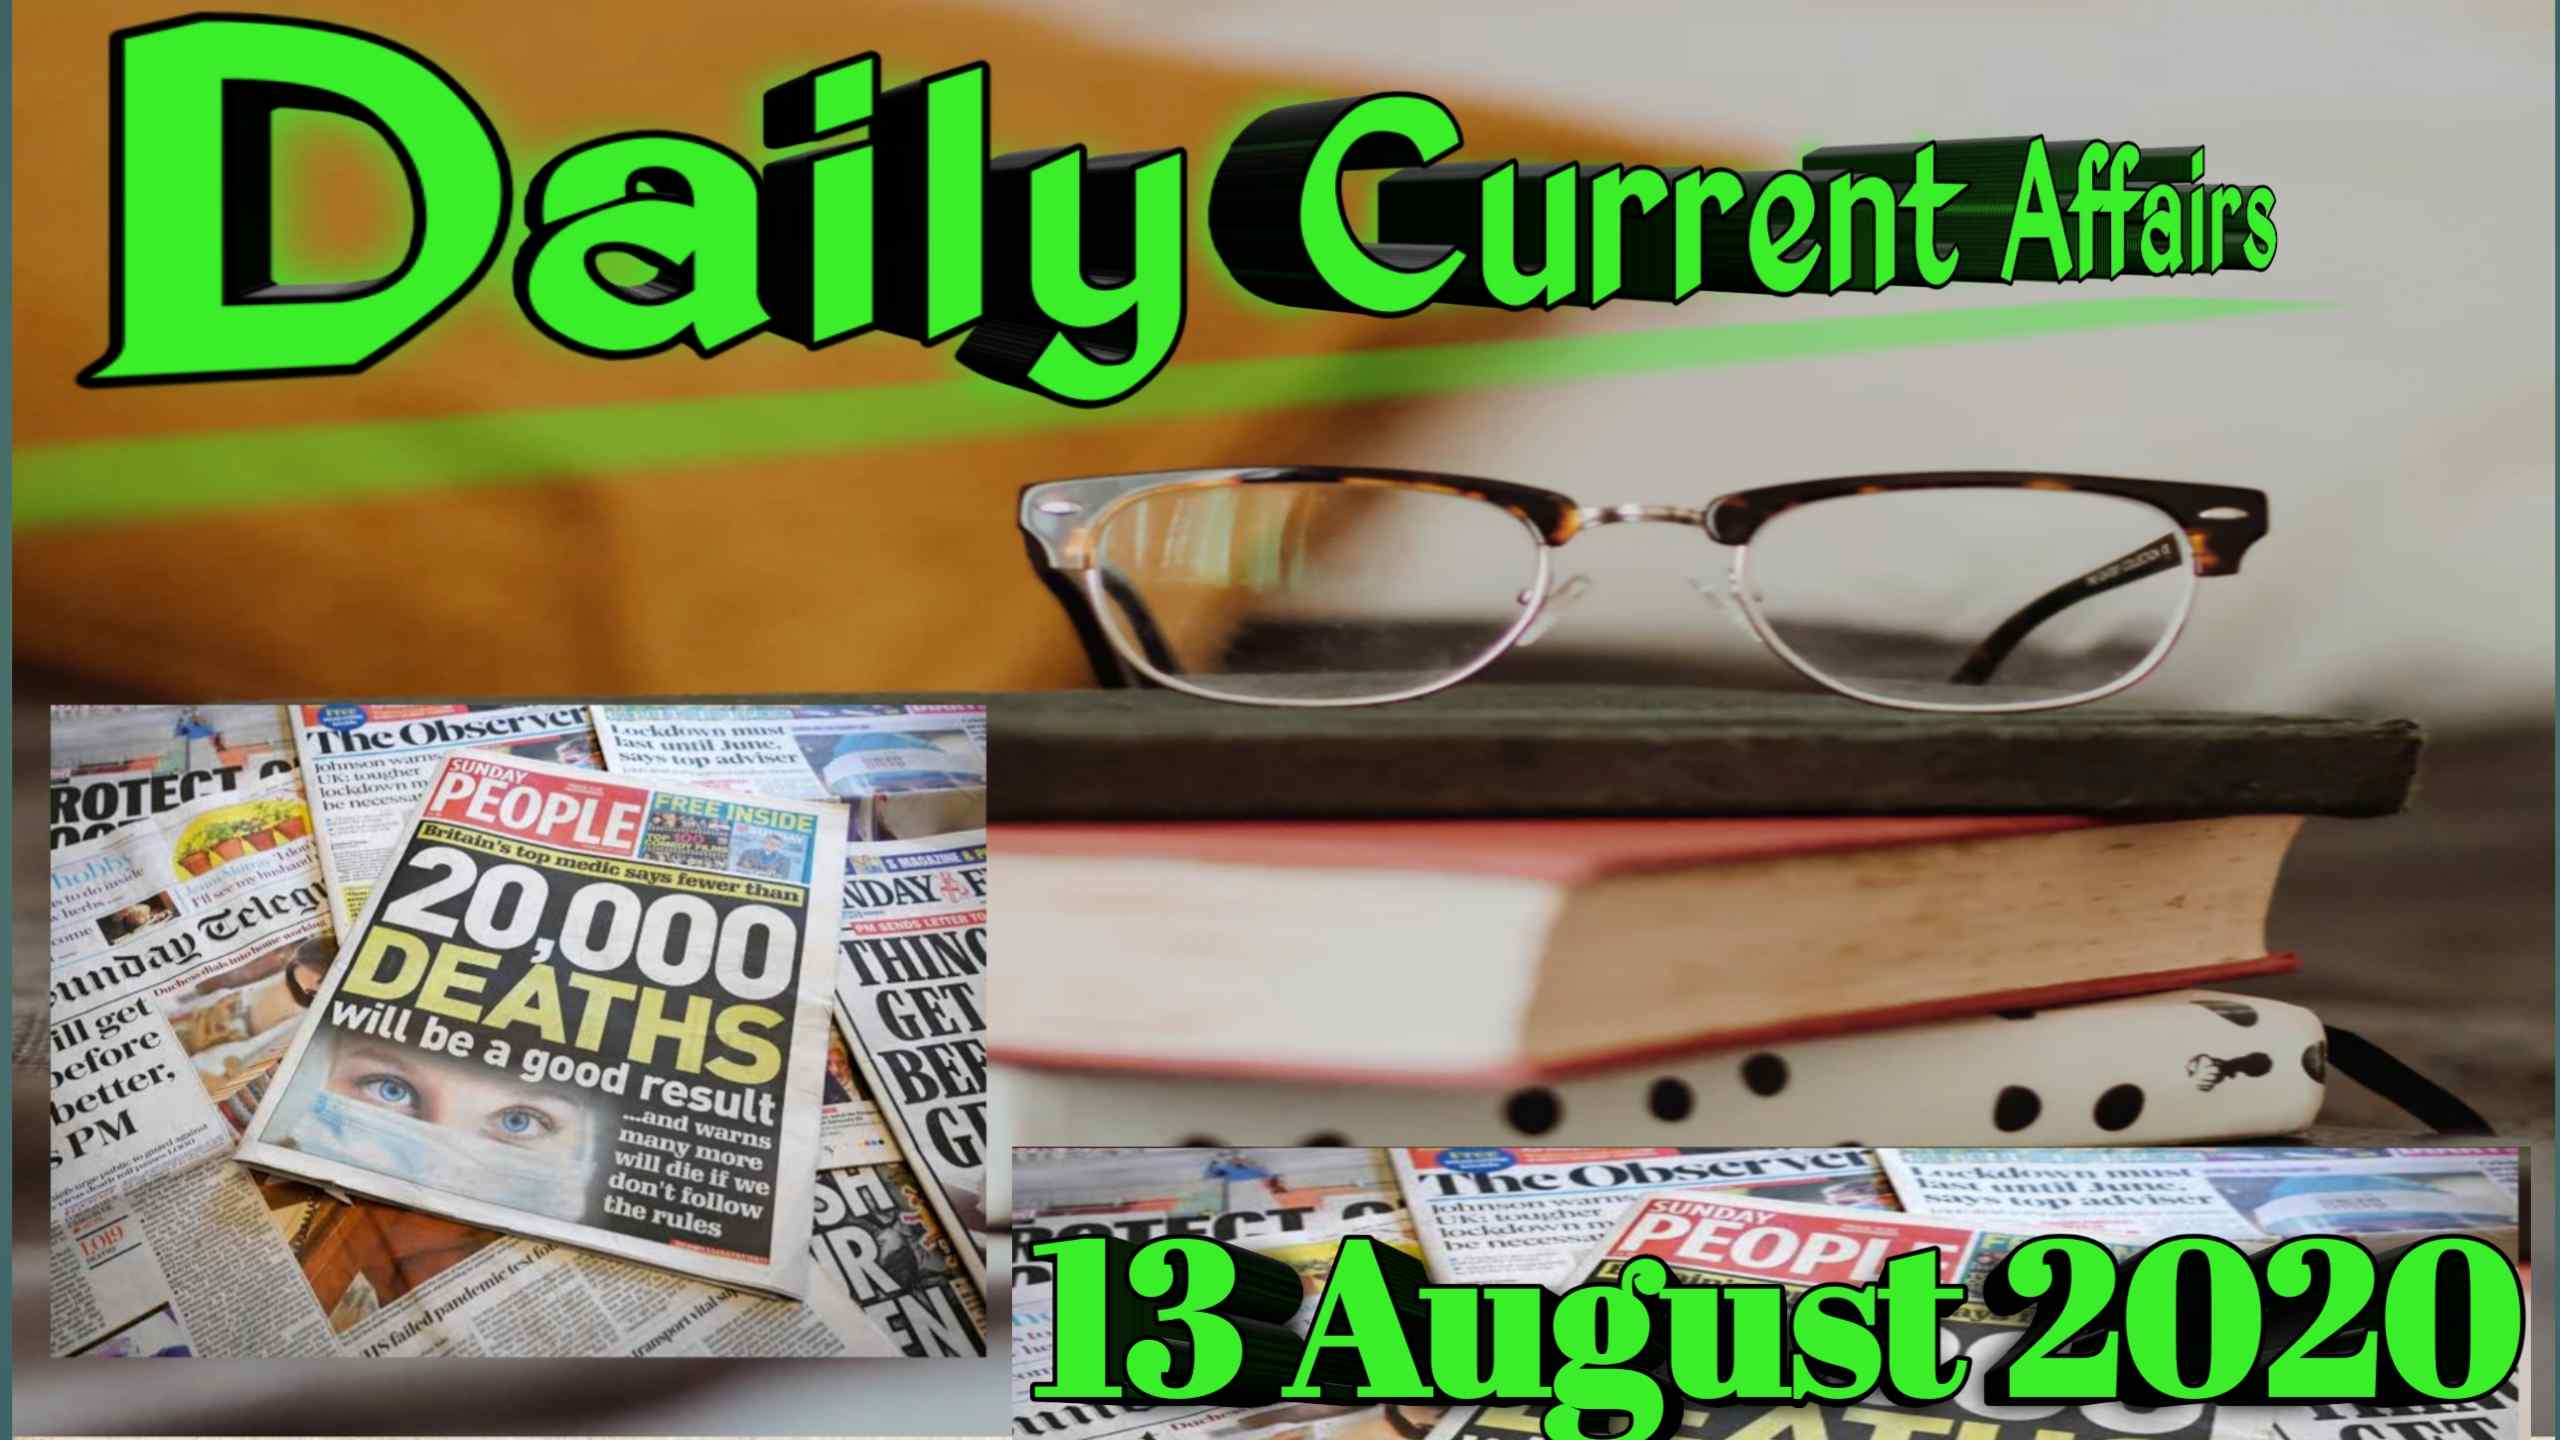 Today Current Affairs (Important Question) - 13 August 2020Vision current affairs